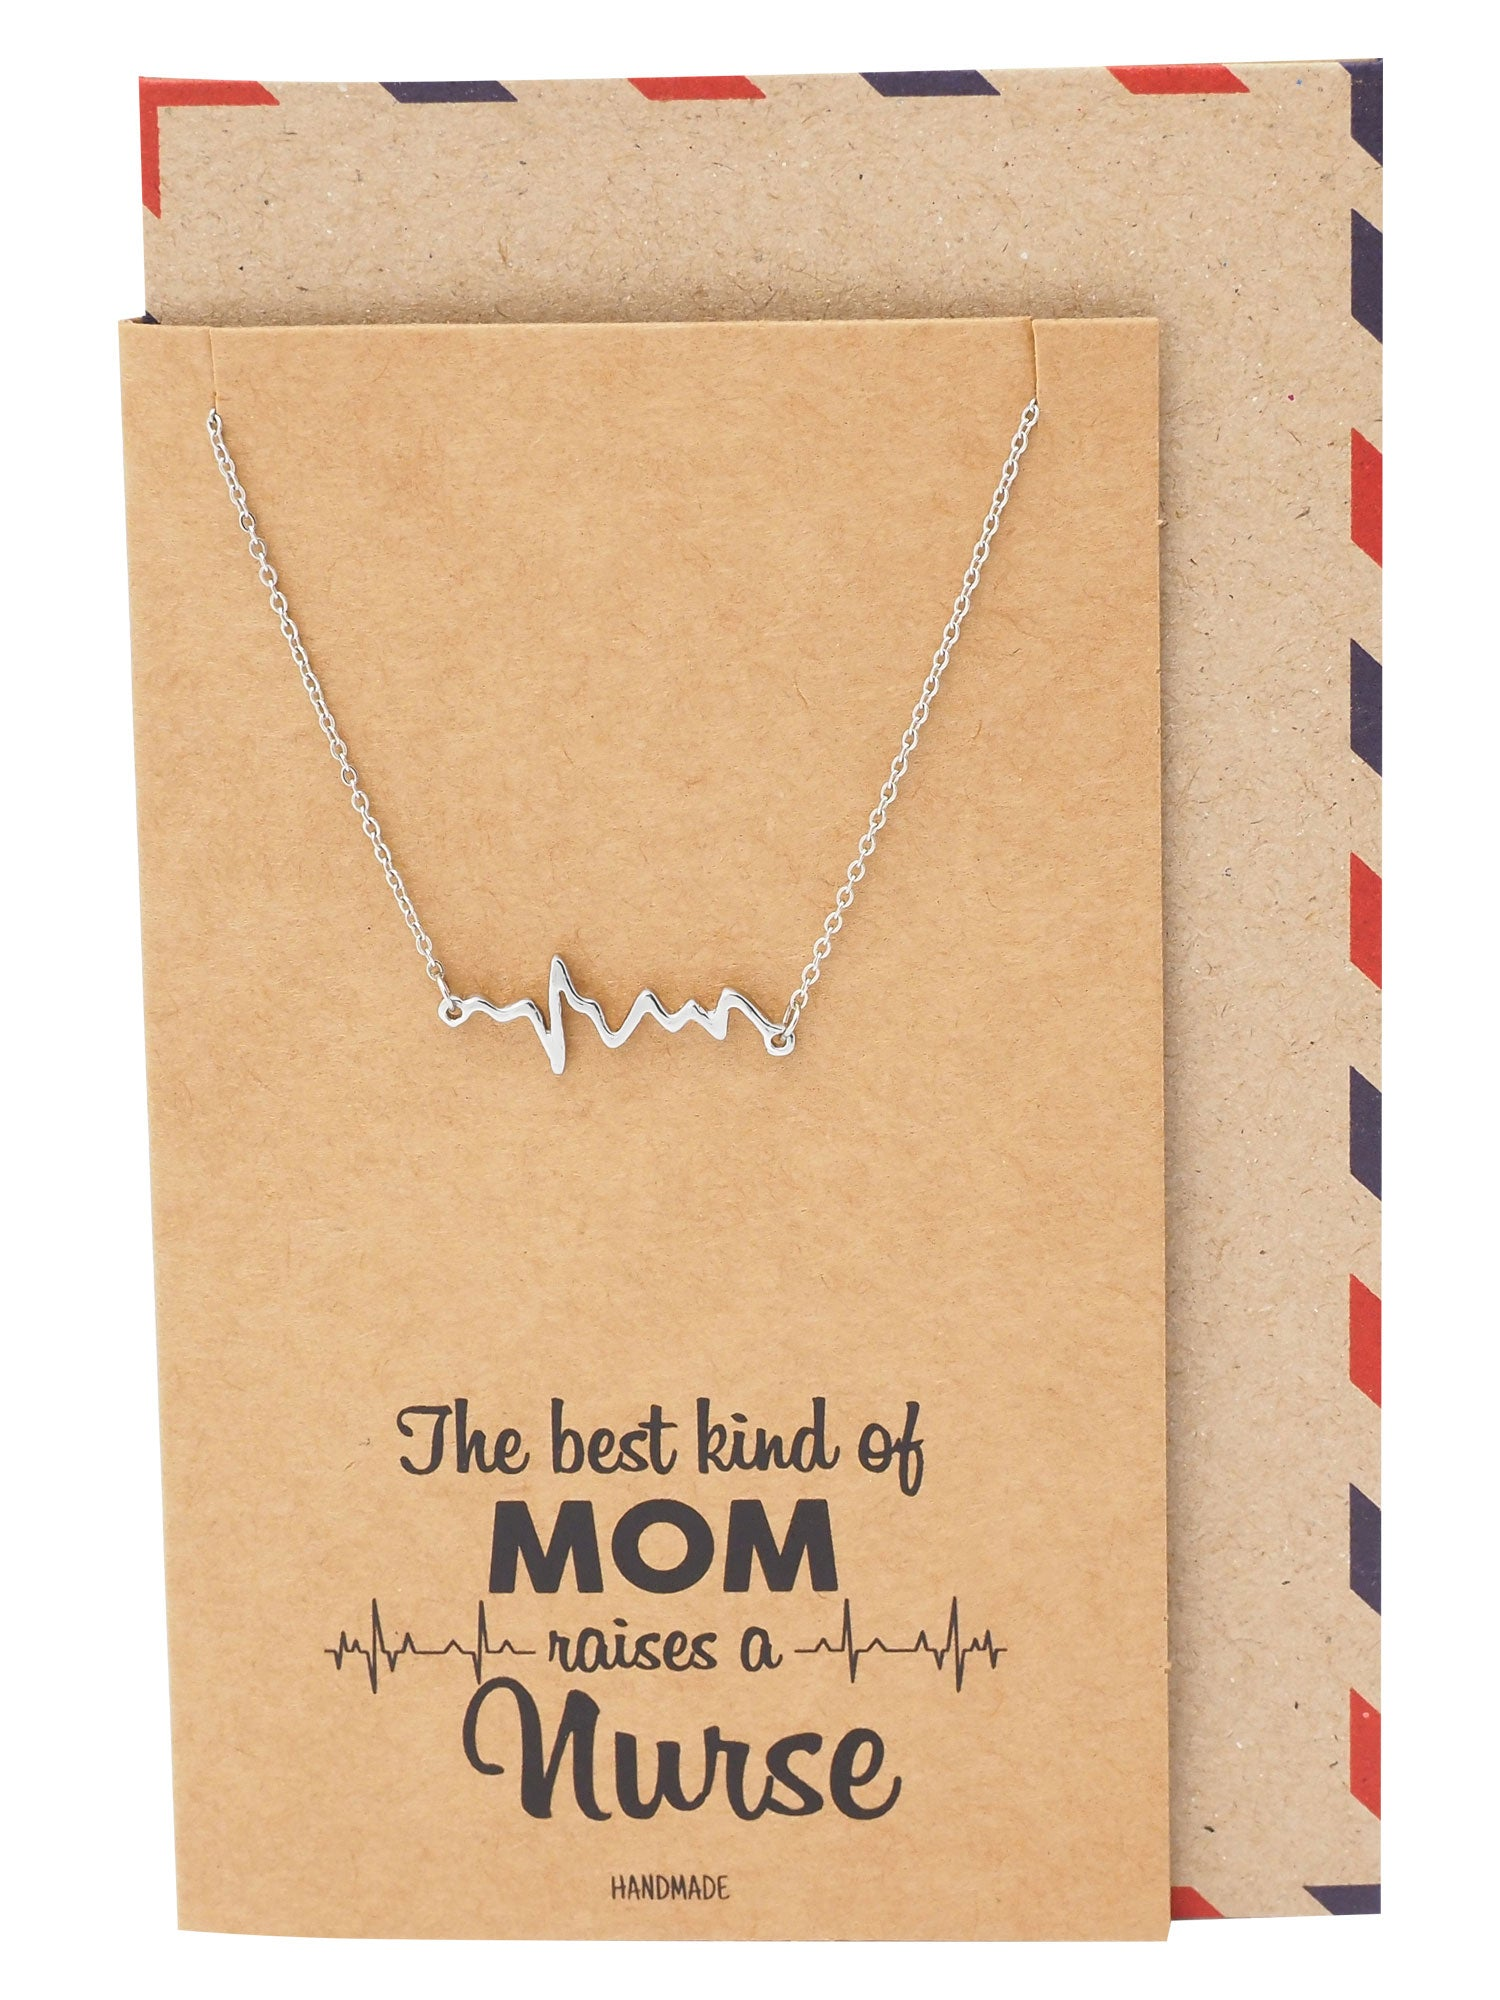 Naiobe Electrocardiogram Heartbeat Necklace